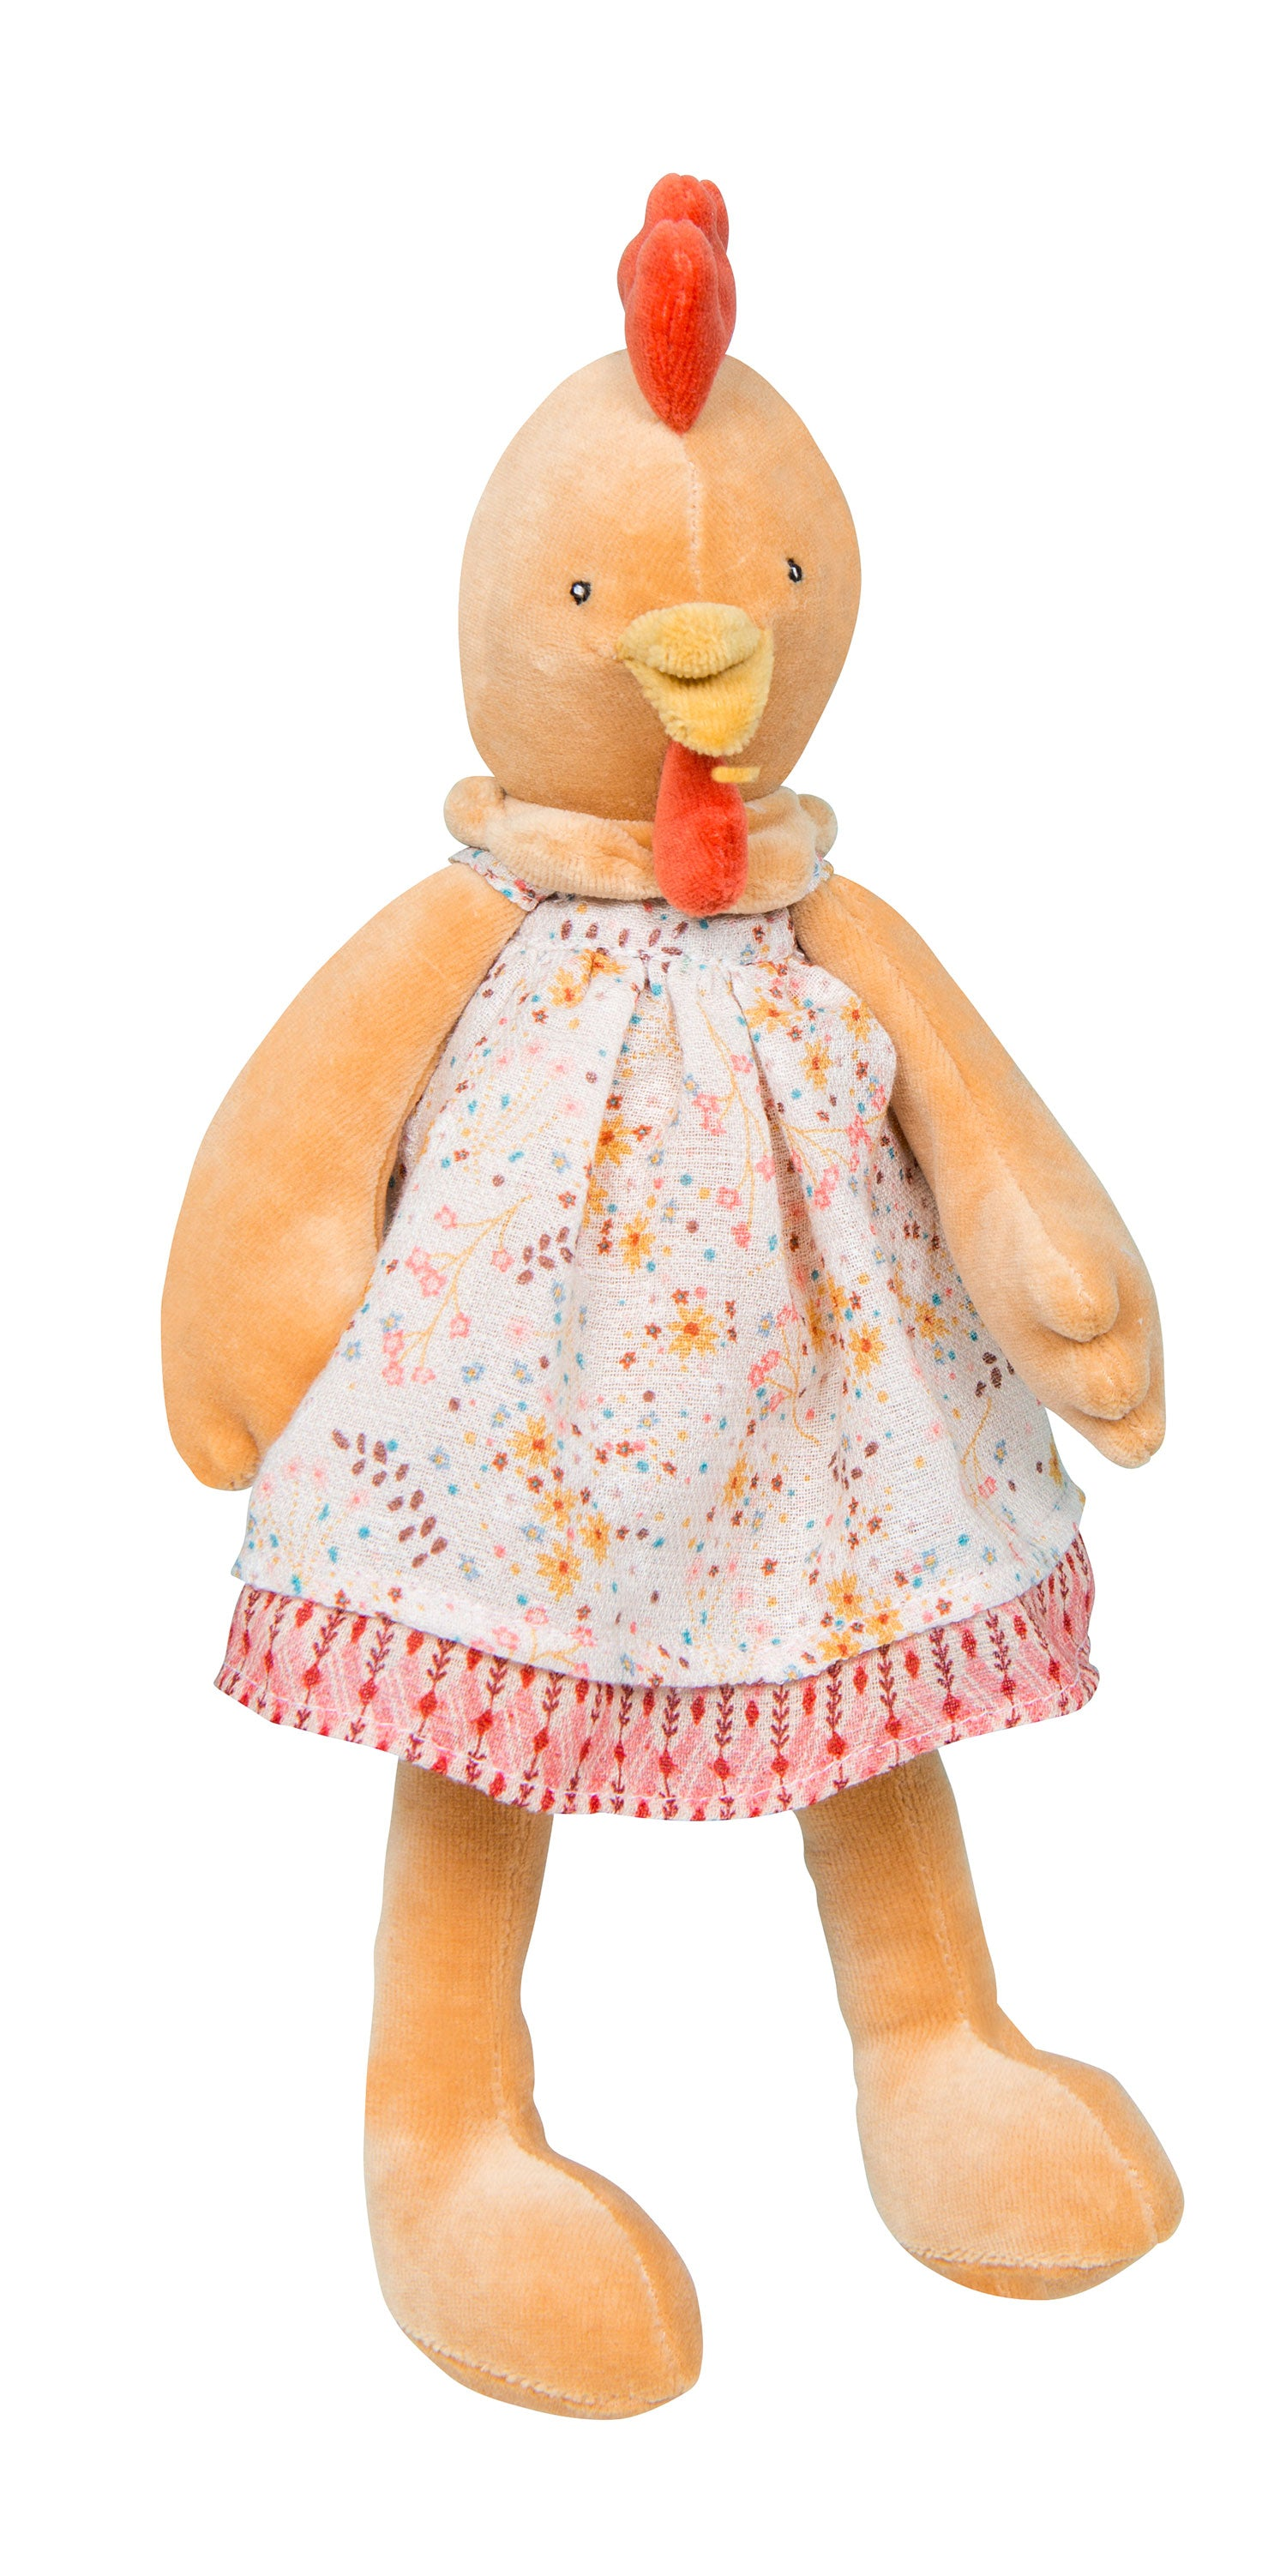 Soft and gentle in her pretty floral dress and delicate shades of orange, Félicie the hen is the perfect plush animal for cuddling baby in her cosy nest!  Suitable from new born and many years later.